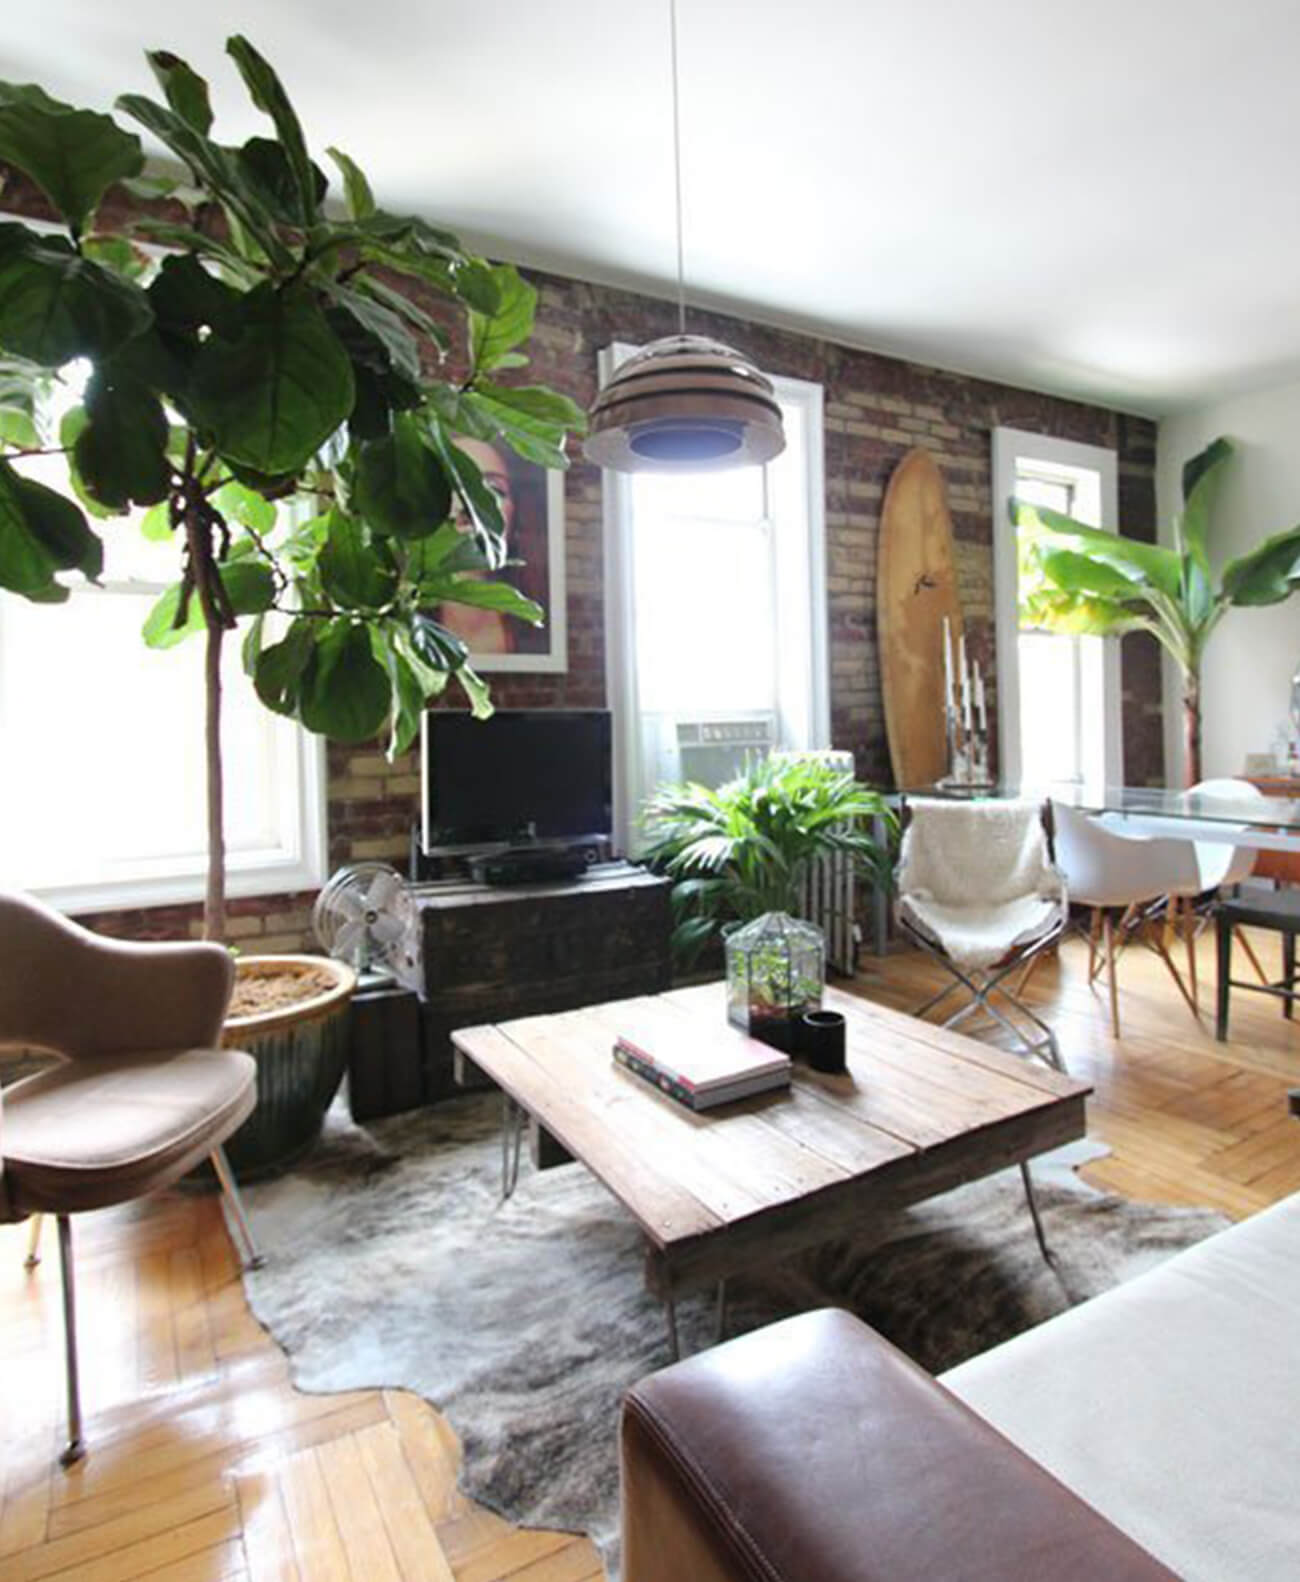 greenery-in-home-decor_ideas-for-decroating-your-apartment